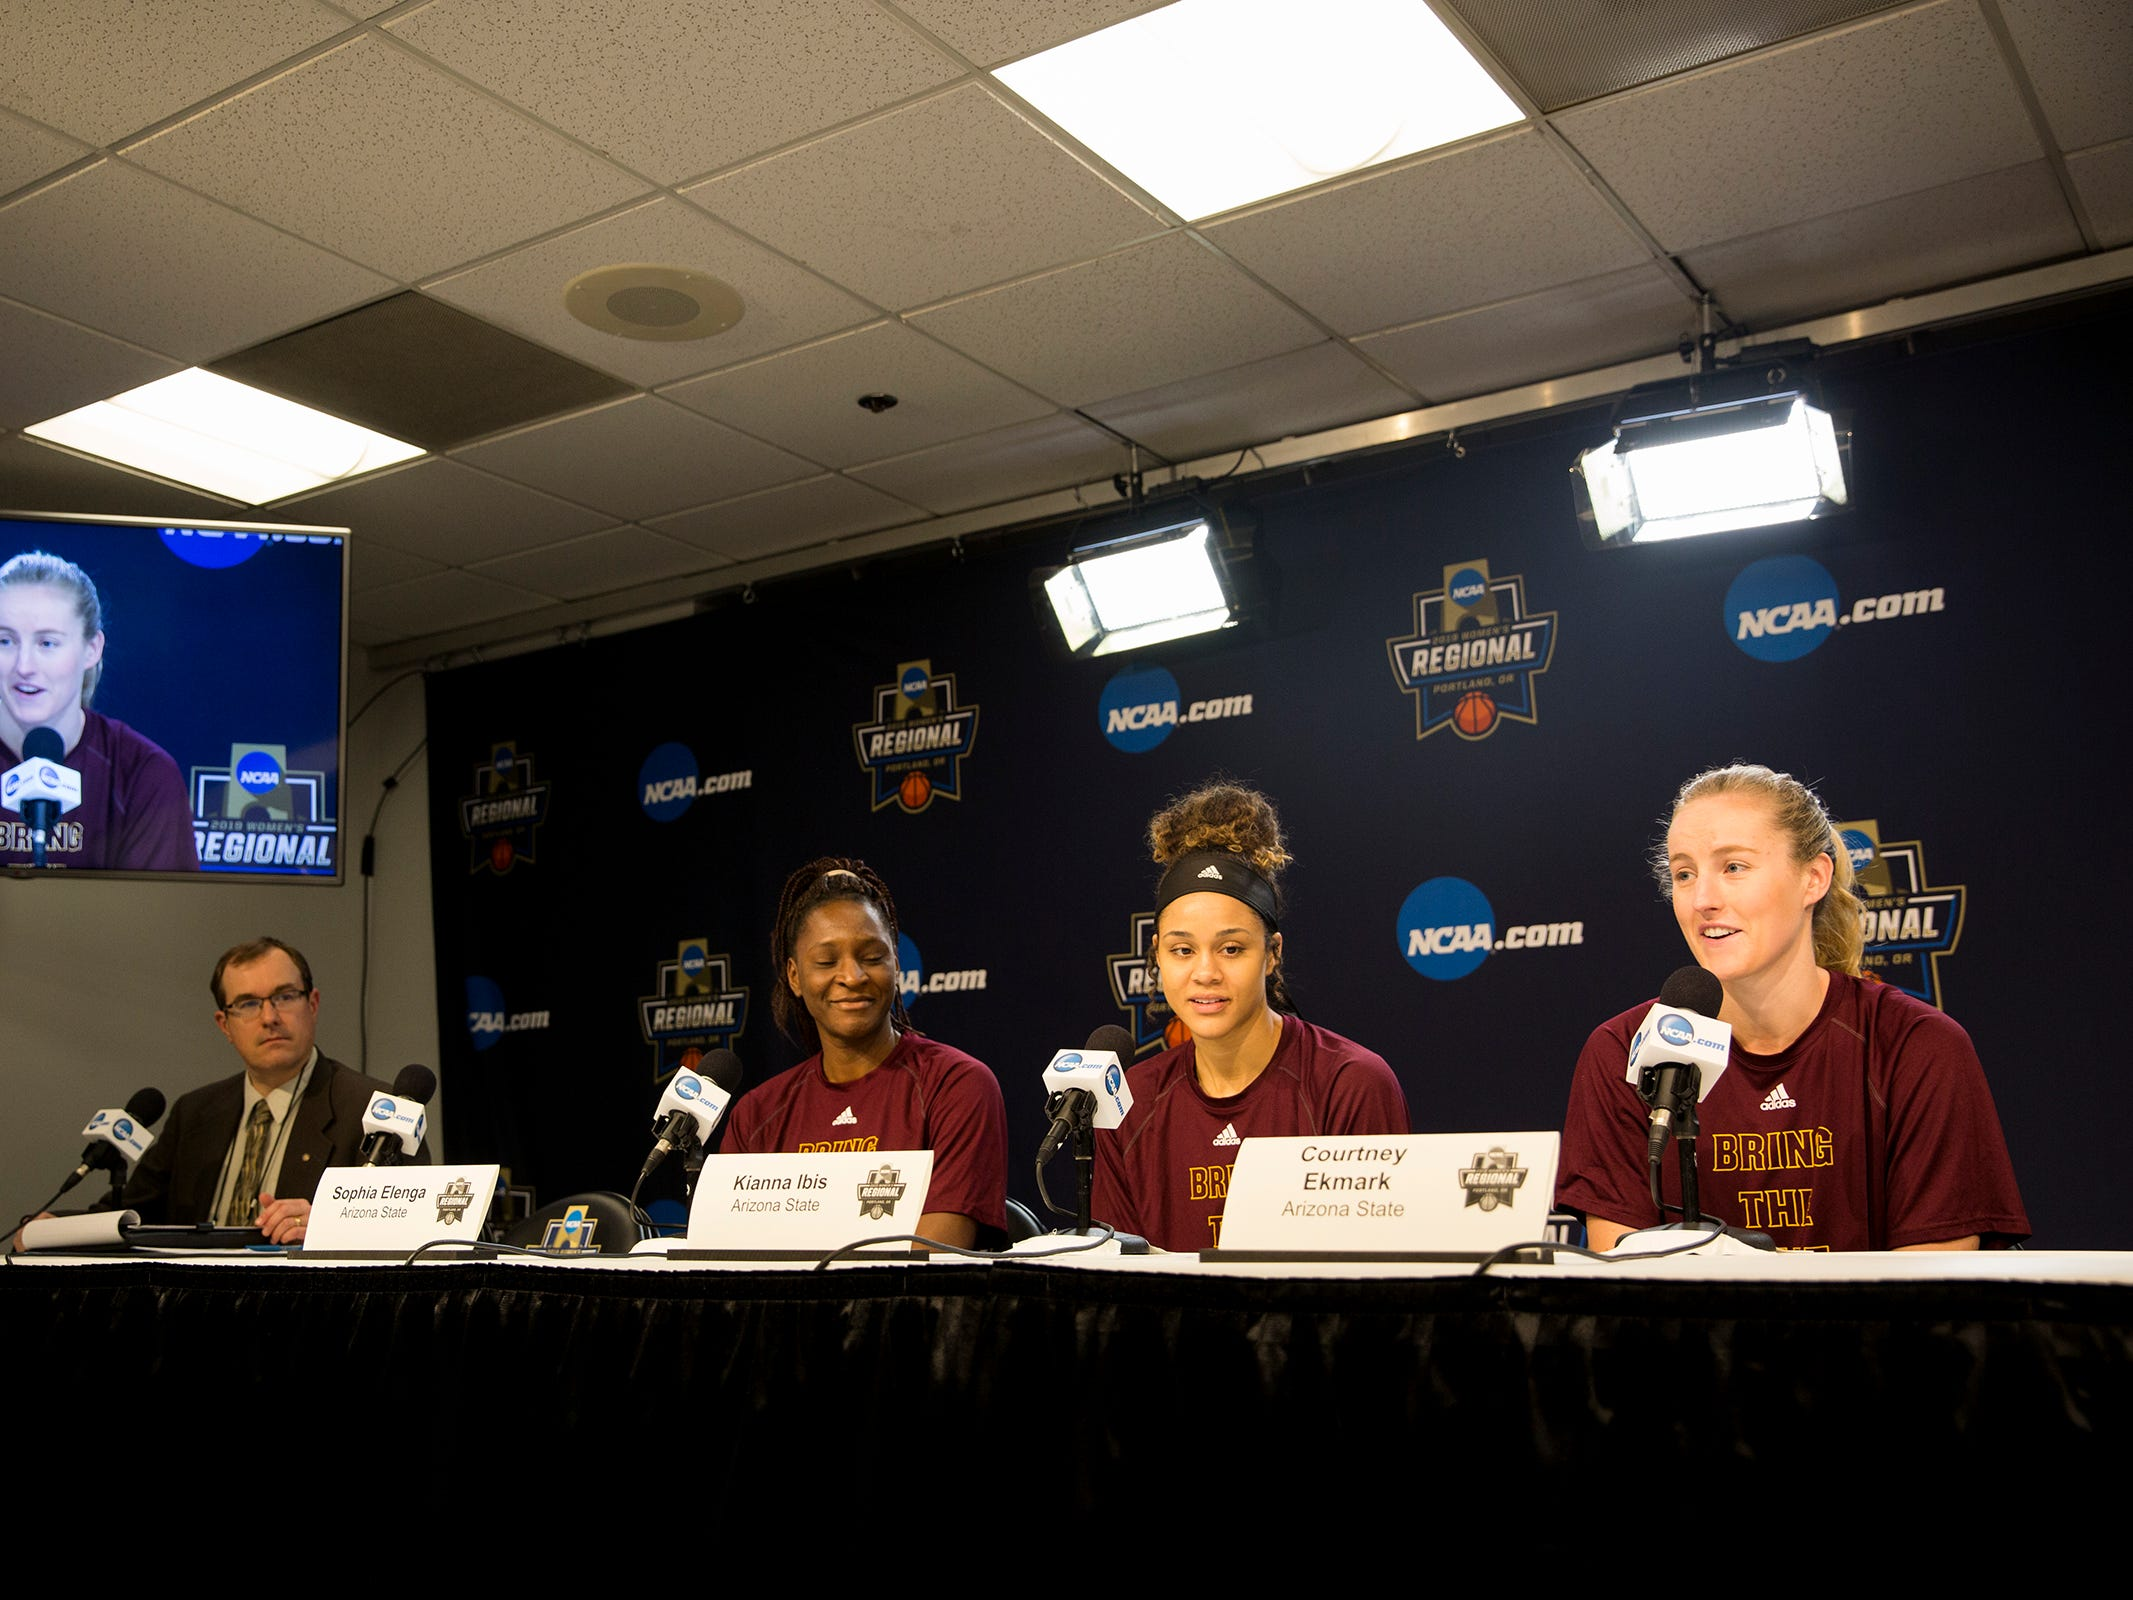 Arizona State University players Sophia Elenga, Kianna Ibis and Courtney Ekmark answer questions during a press conference prior to the NCAA Women's Regional at the Moda Center in Portland on March 28, 2019.